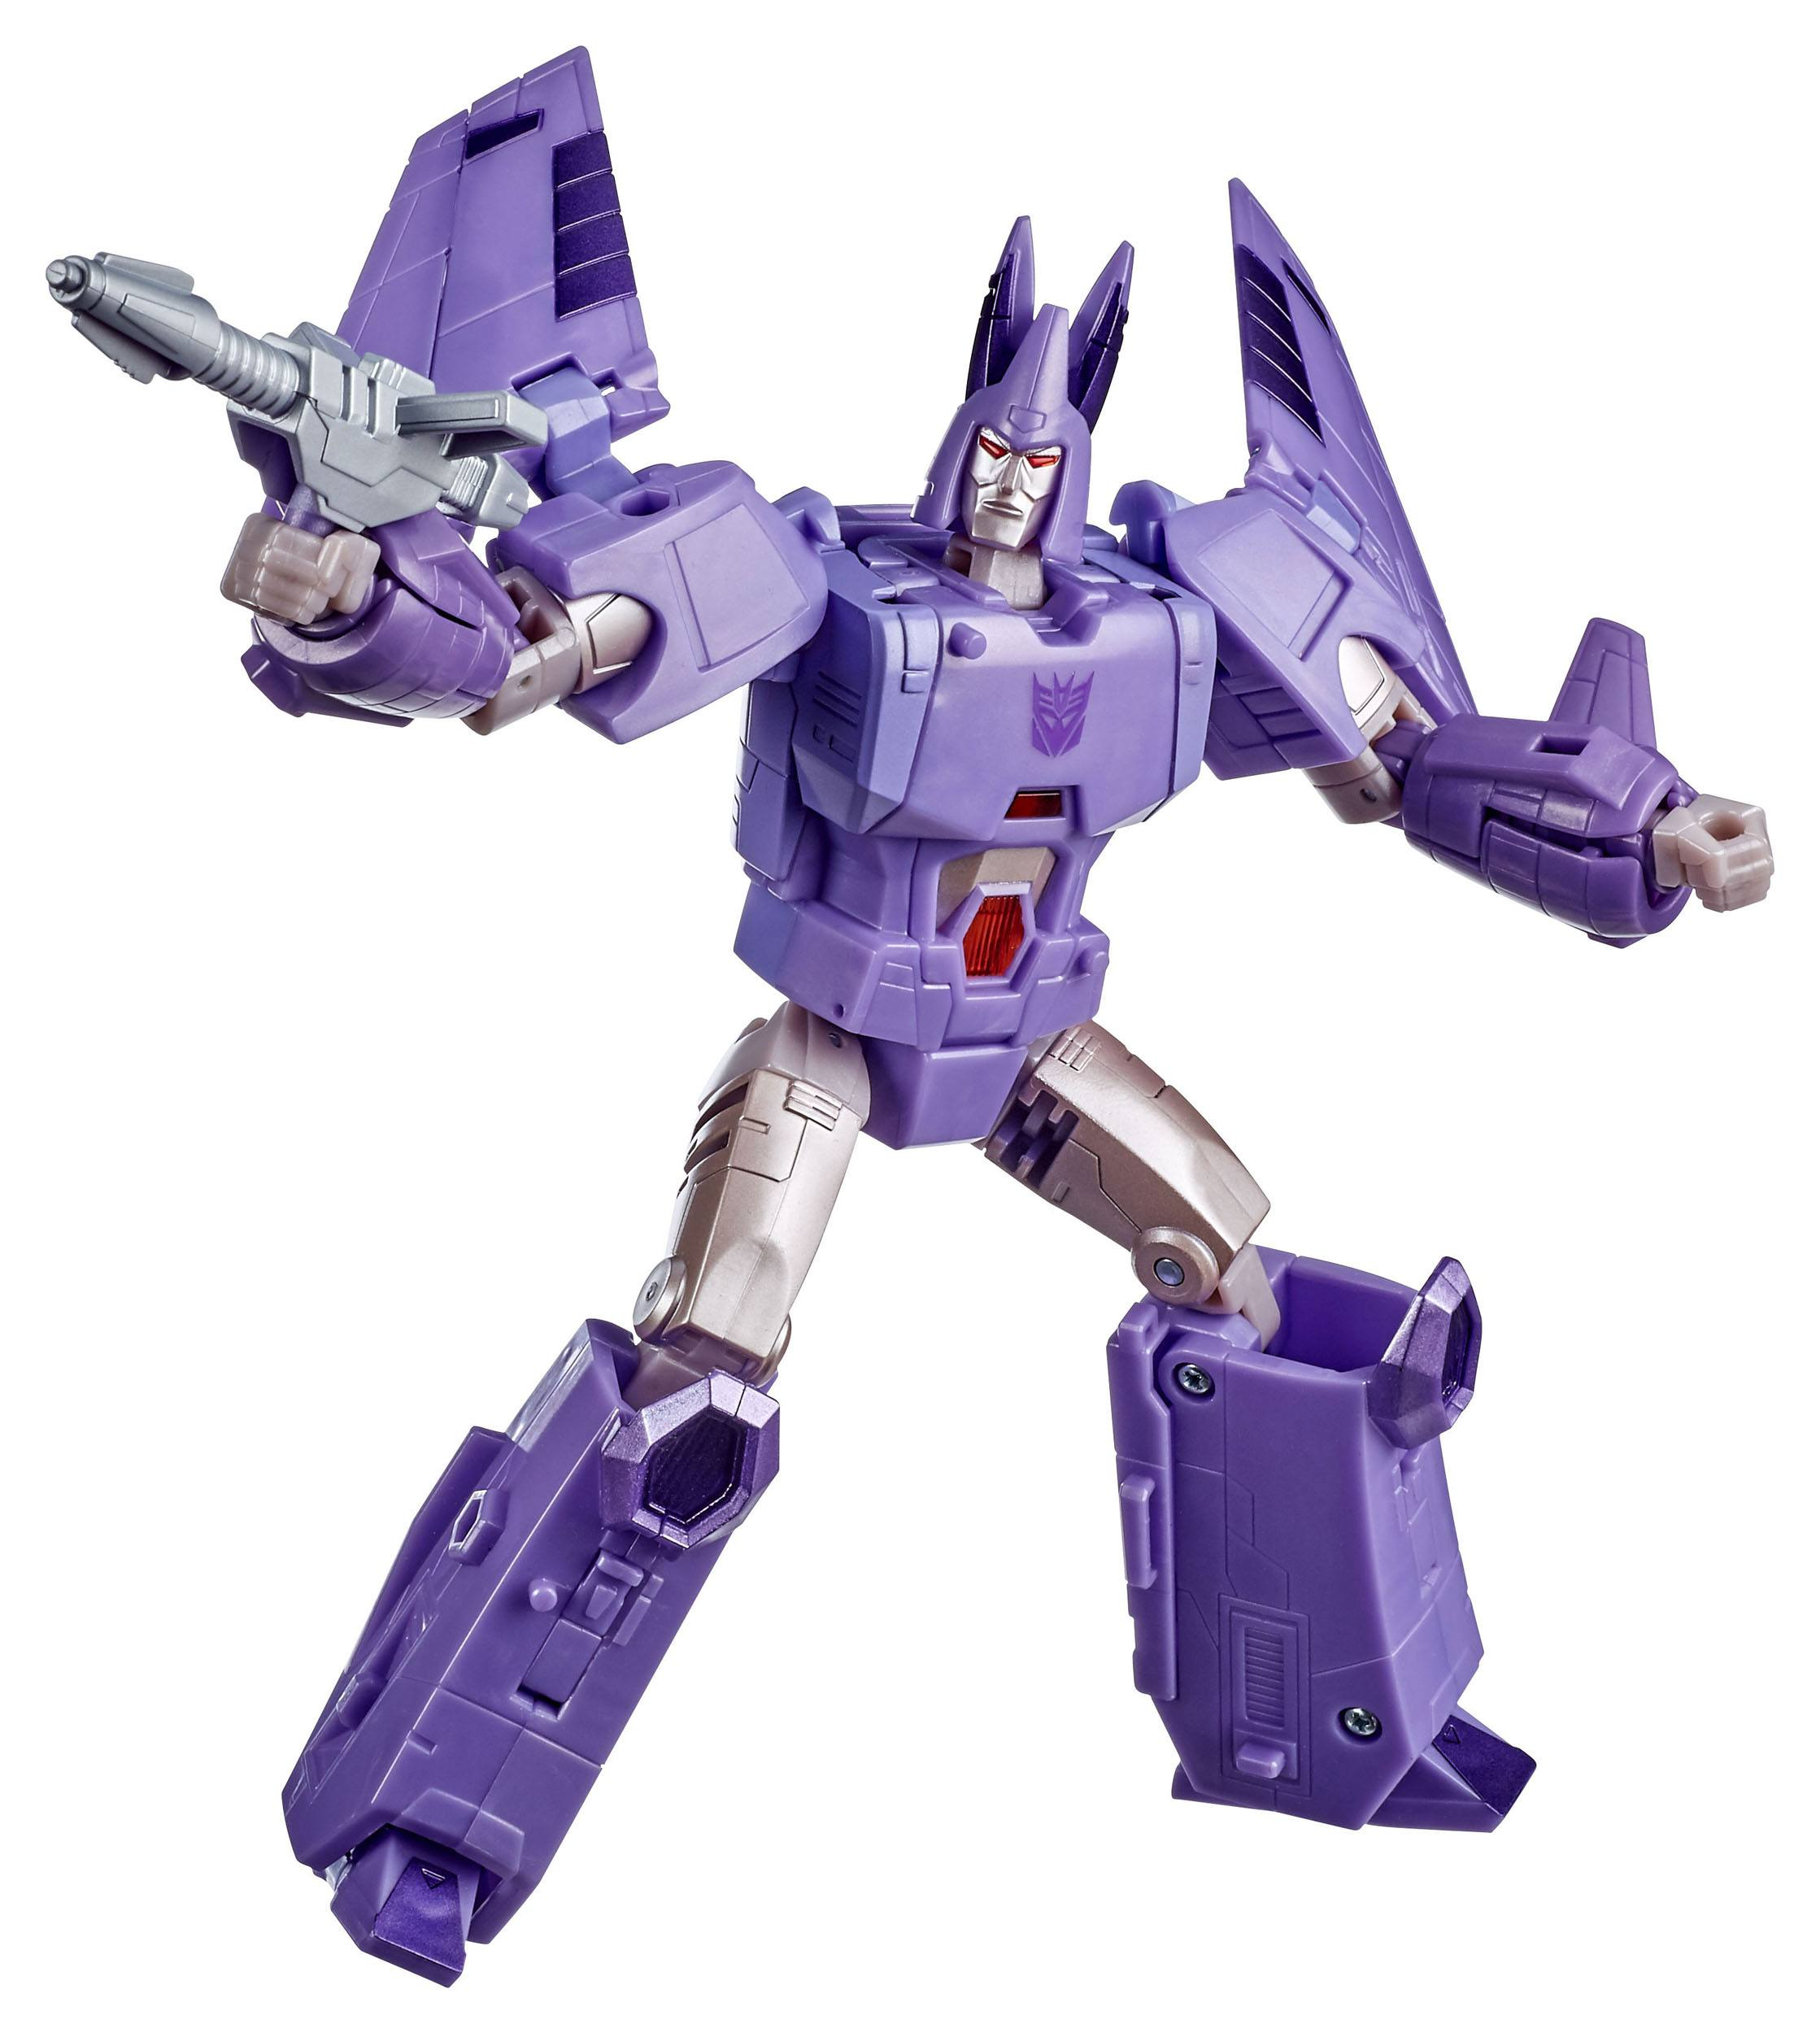 Transformers Generations War for Cybertron Action Figures: CLASS VOYAGER - CYCLONUS by Hasbro